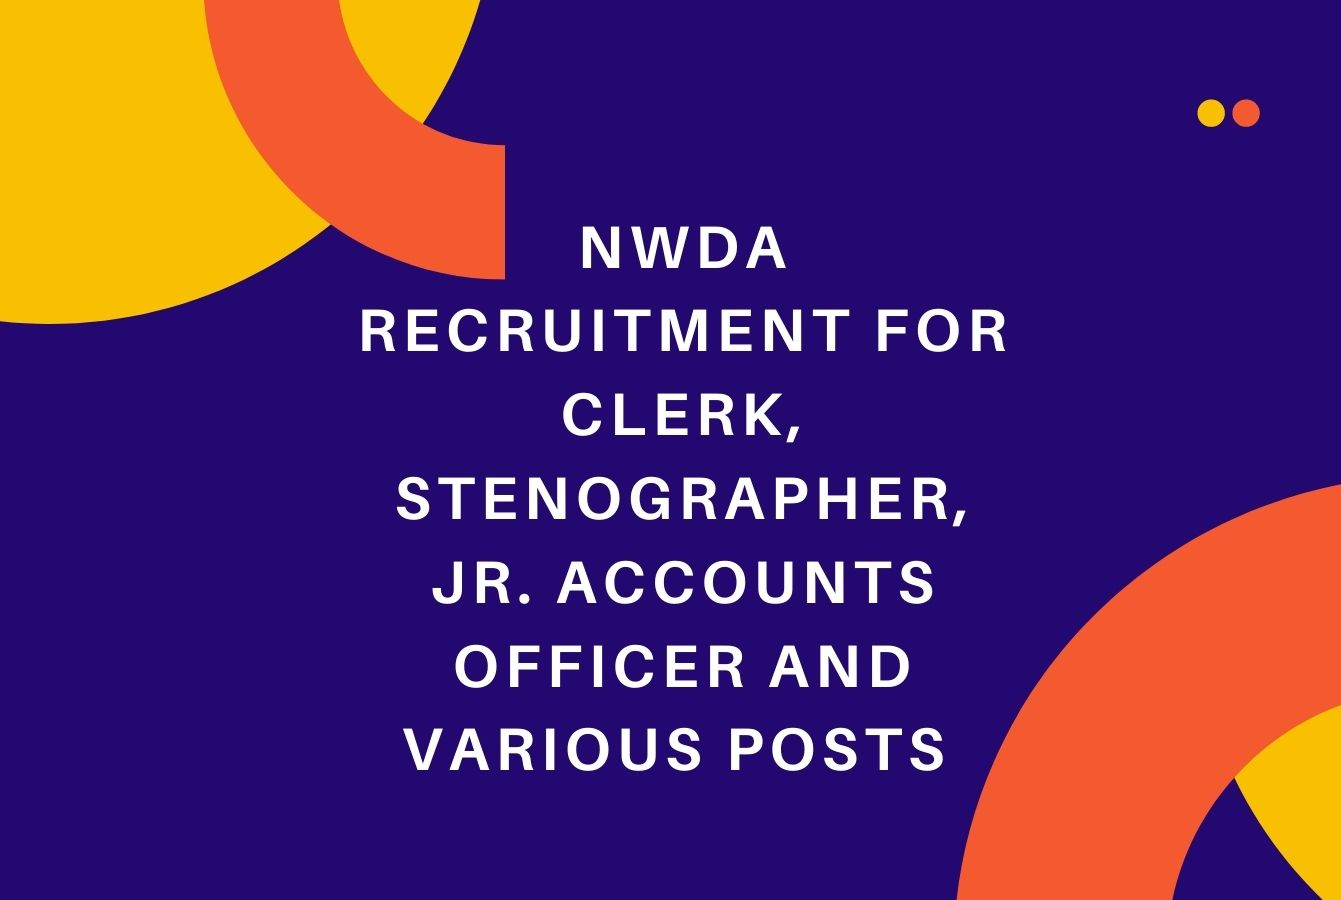 NWDA Recruitment for Clerk, Stenographer, Jr. Accounts Officer and various posts